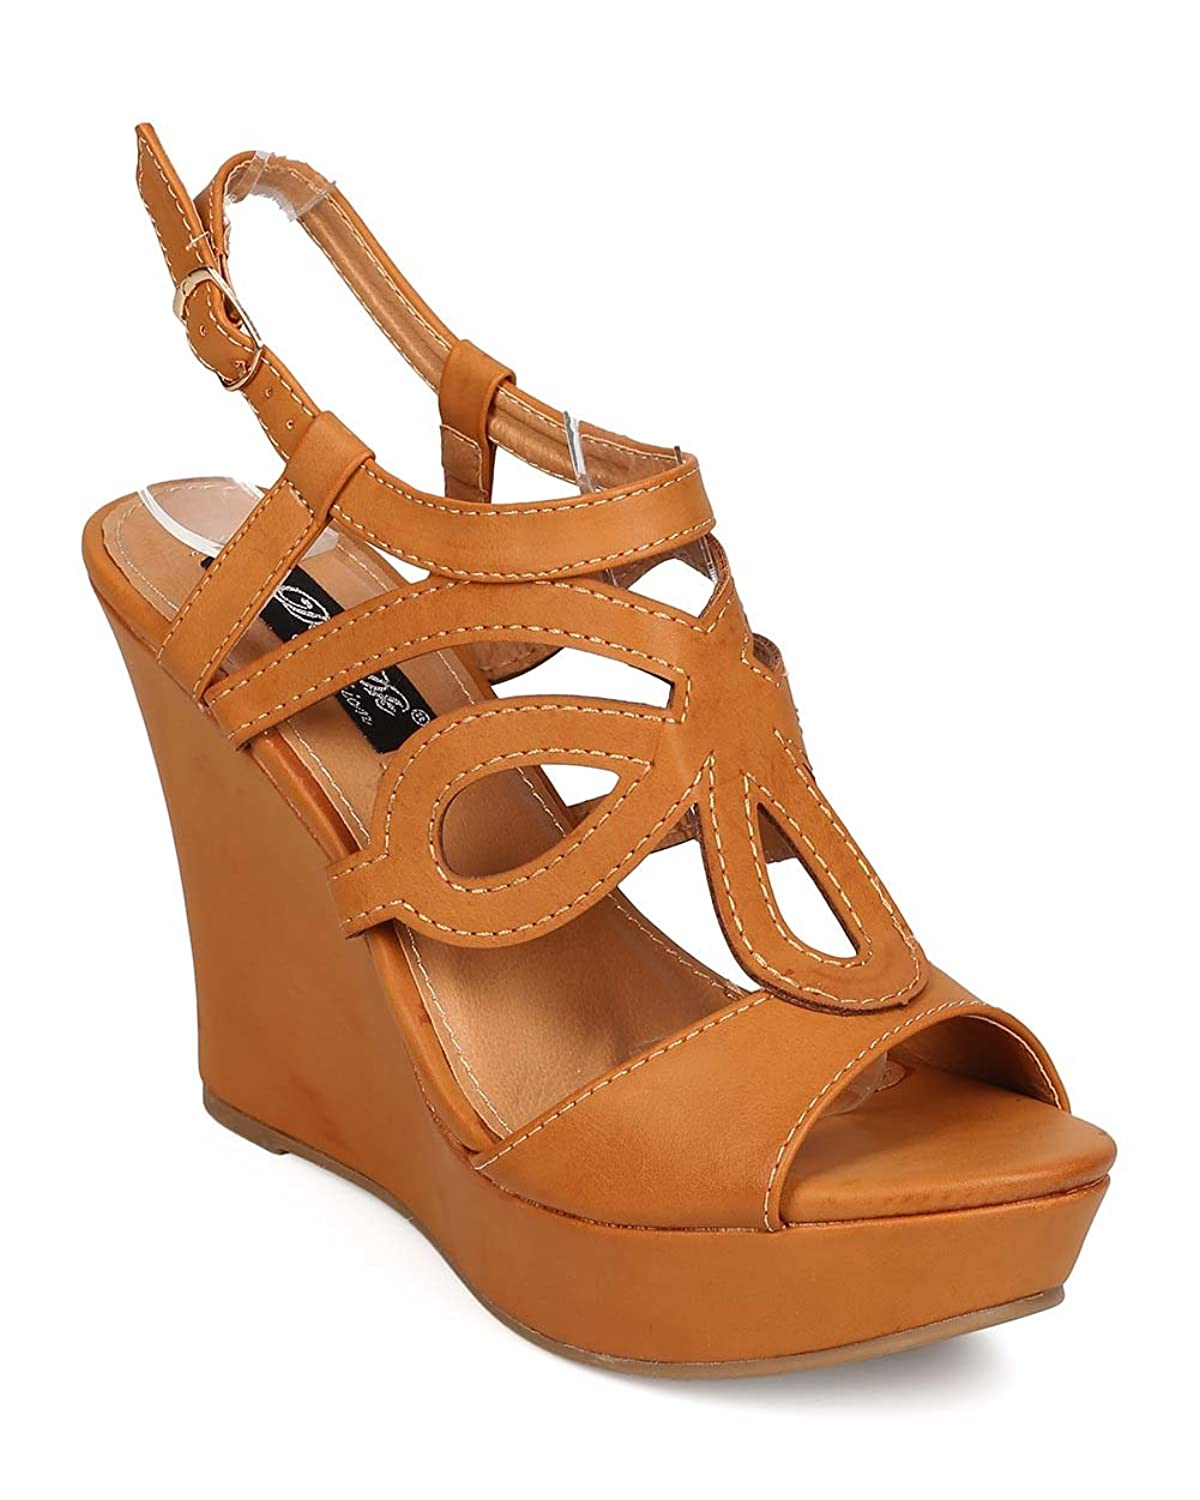 DbDk Women Leatherette Peep Toe Strappy Cut Out Caged Platform Wedge Sandal EH43 - Camel B01G4I9HJG 9 M US